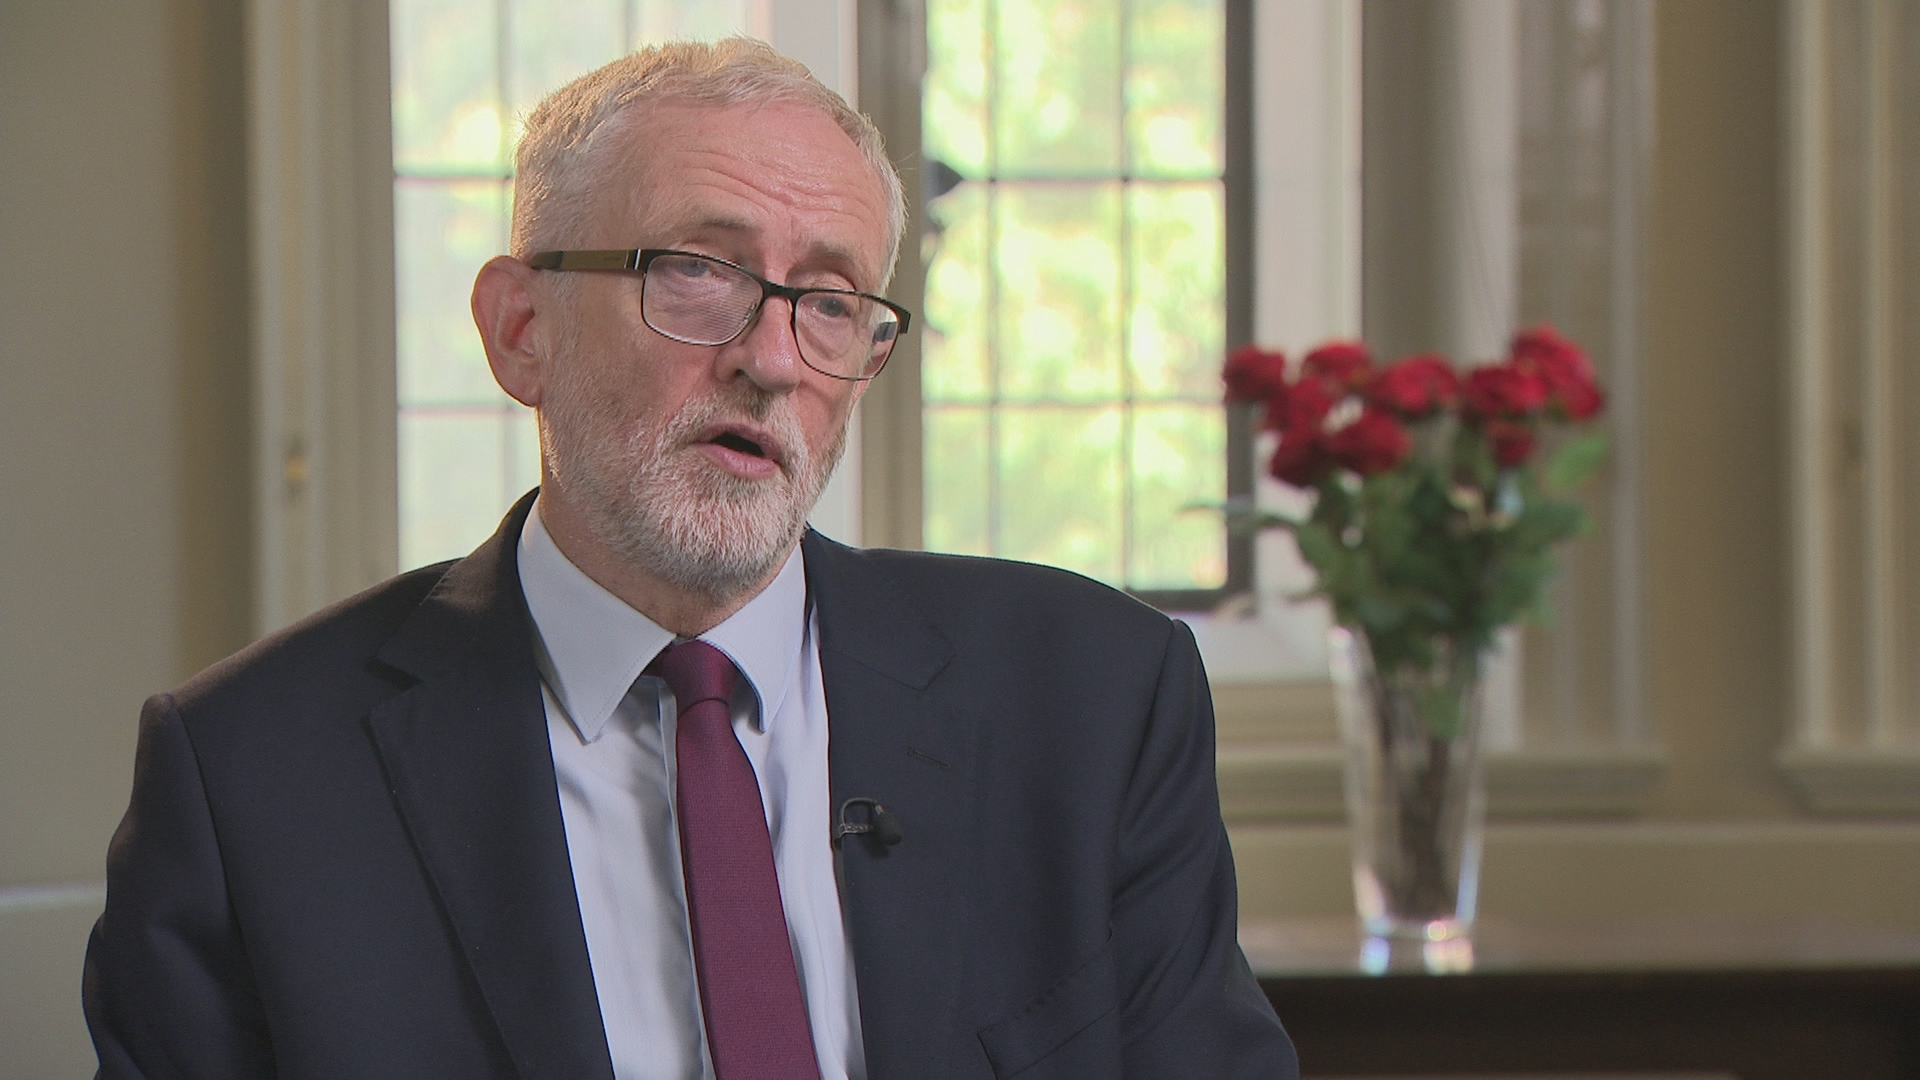 Jeremy Corbyn Says He Would Serve Full Term As Prime Minister